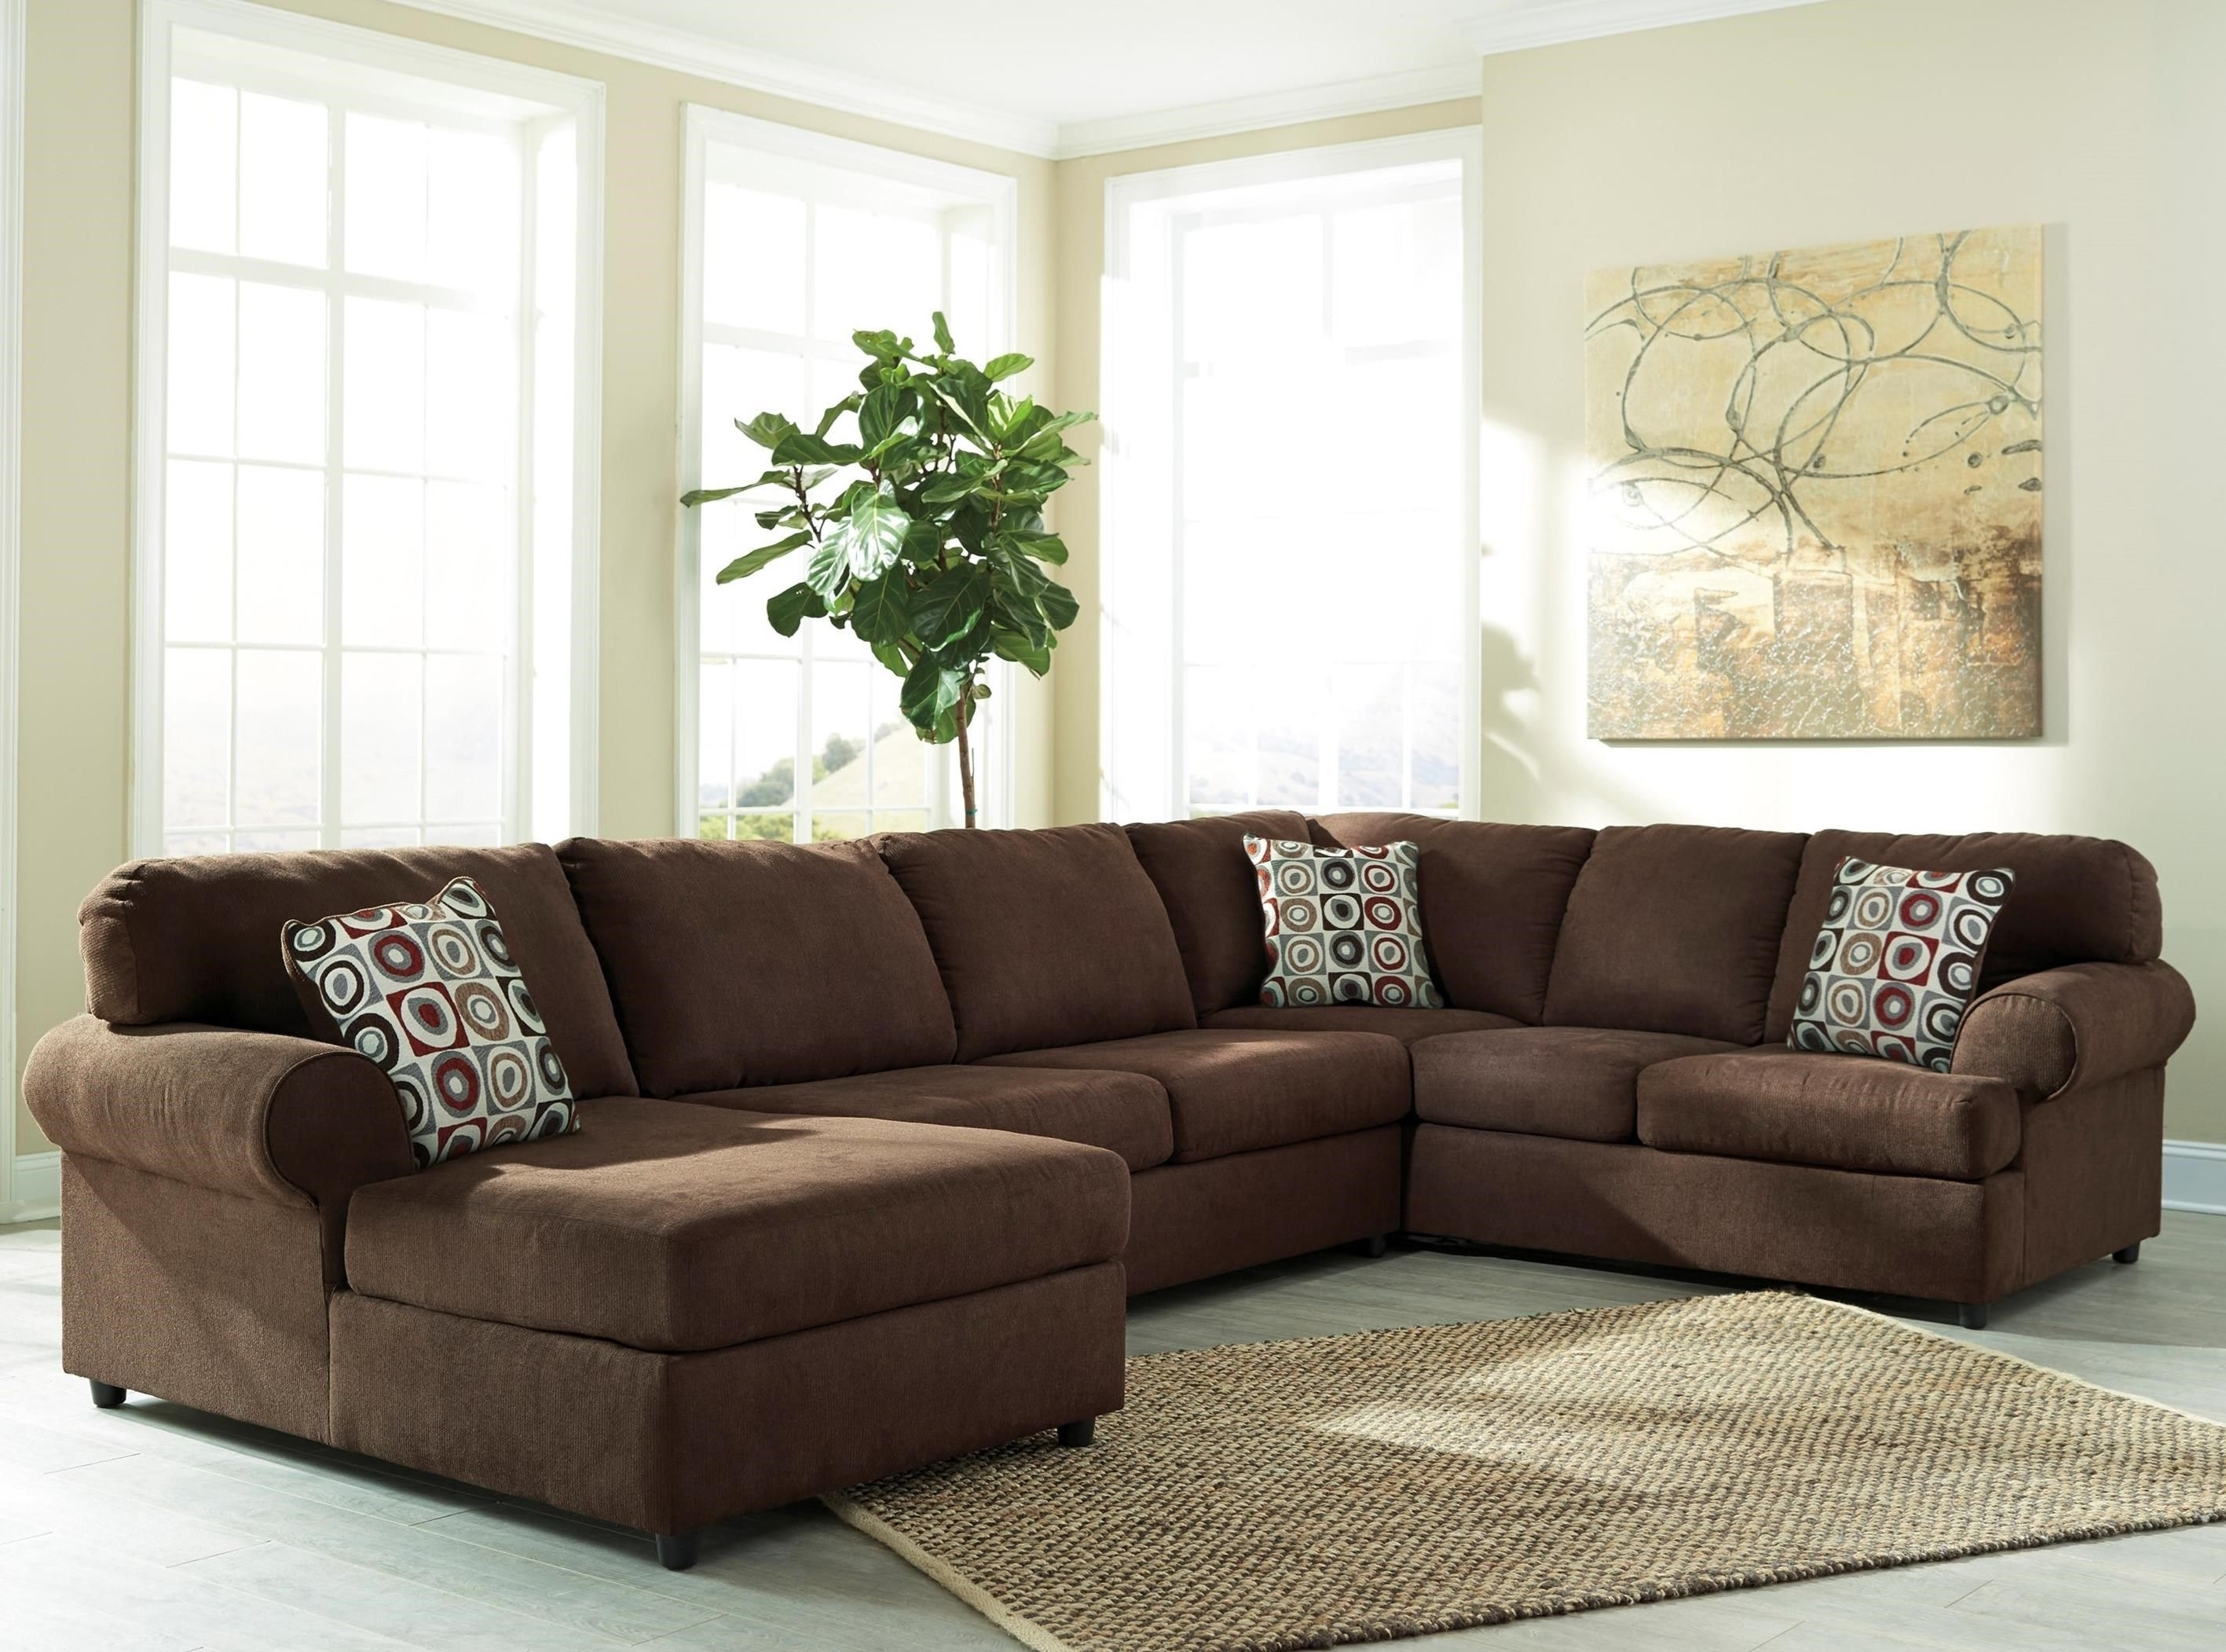 Jayceon 3 Piece Sectional With Left Chaisesignature Design Intended For Royal Furniture Sectional Sofas (View 8 of 10)